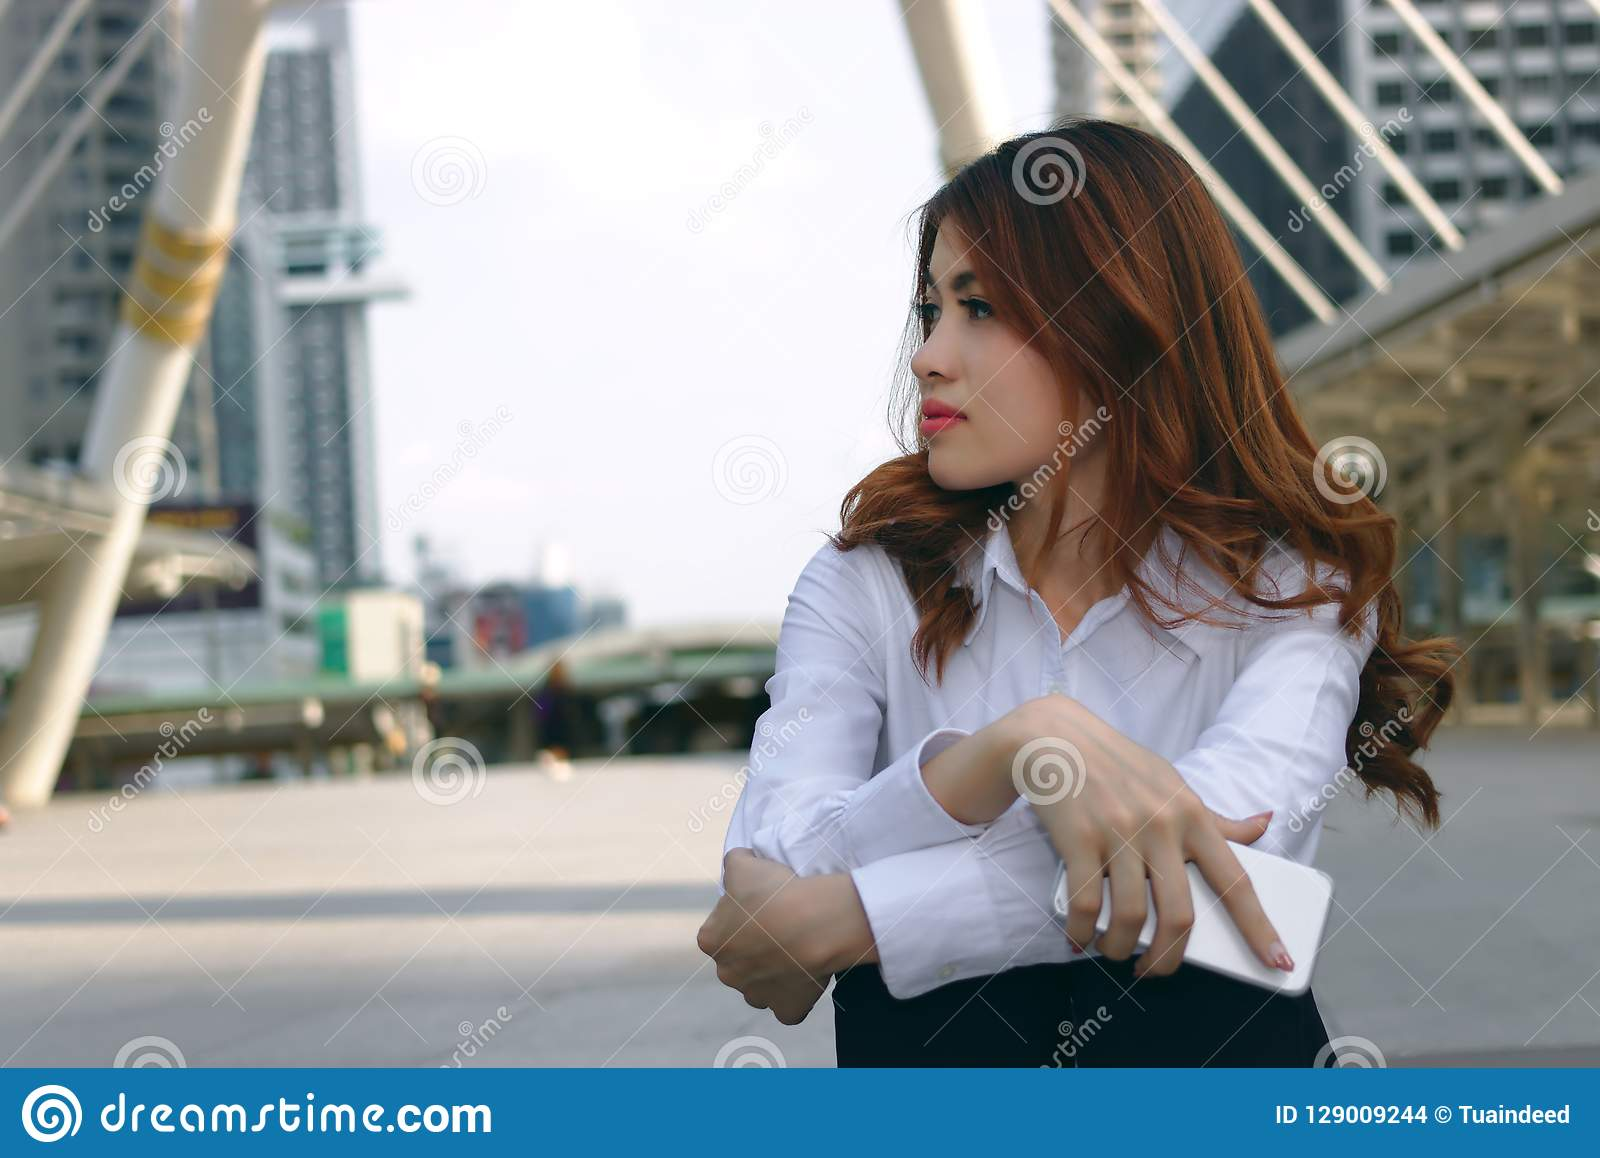 Vintage toned image of attractive young Asian business woman thinking and dreaming about something at city background.